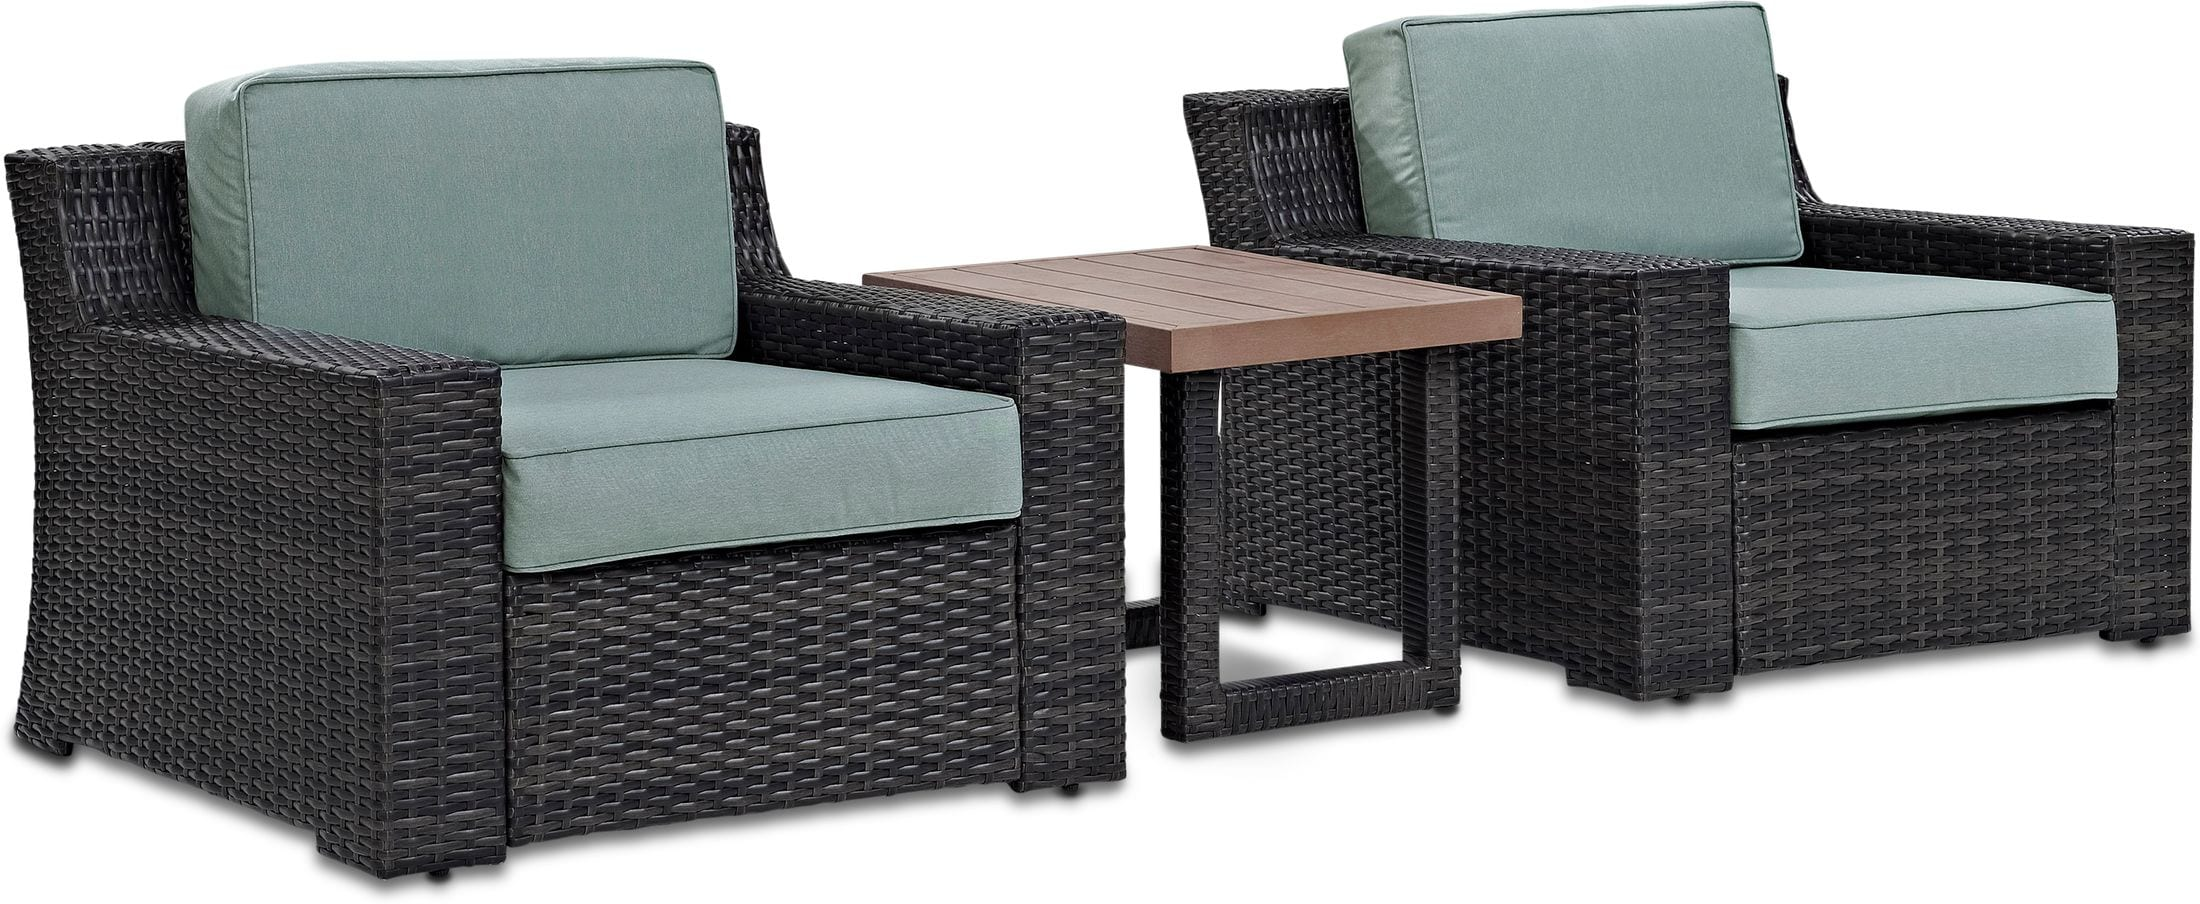 Outdoor Furniture - Tethys Set of 2 Outdoor Chairs and End Table Set